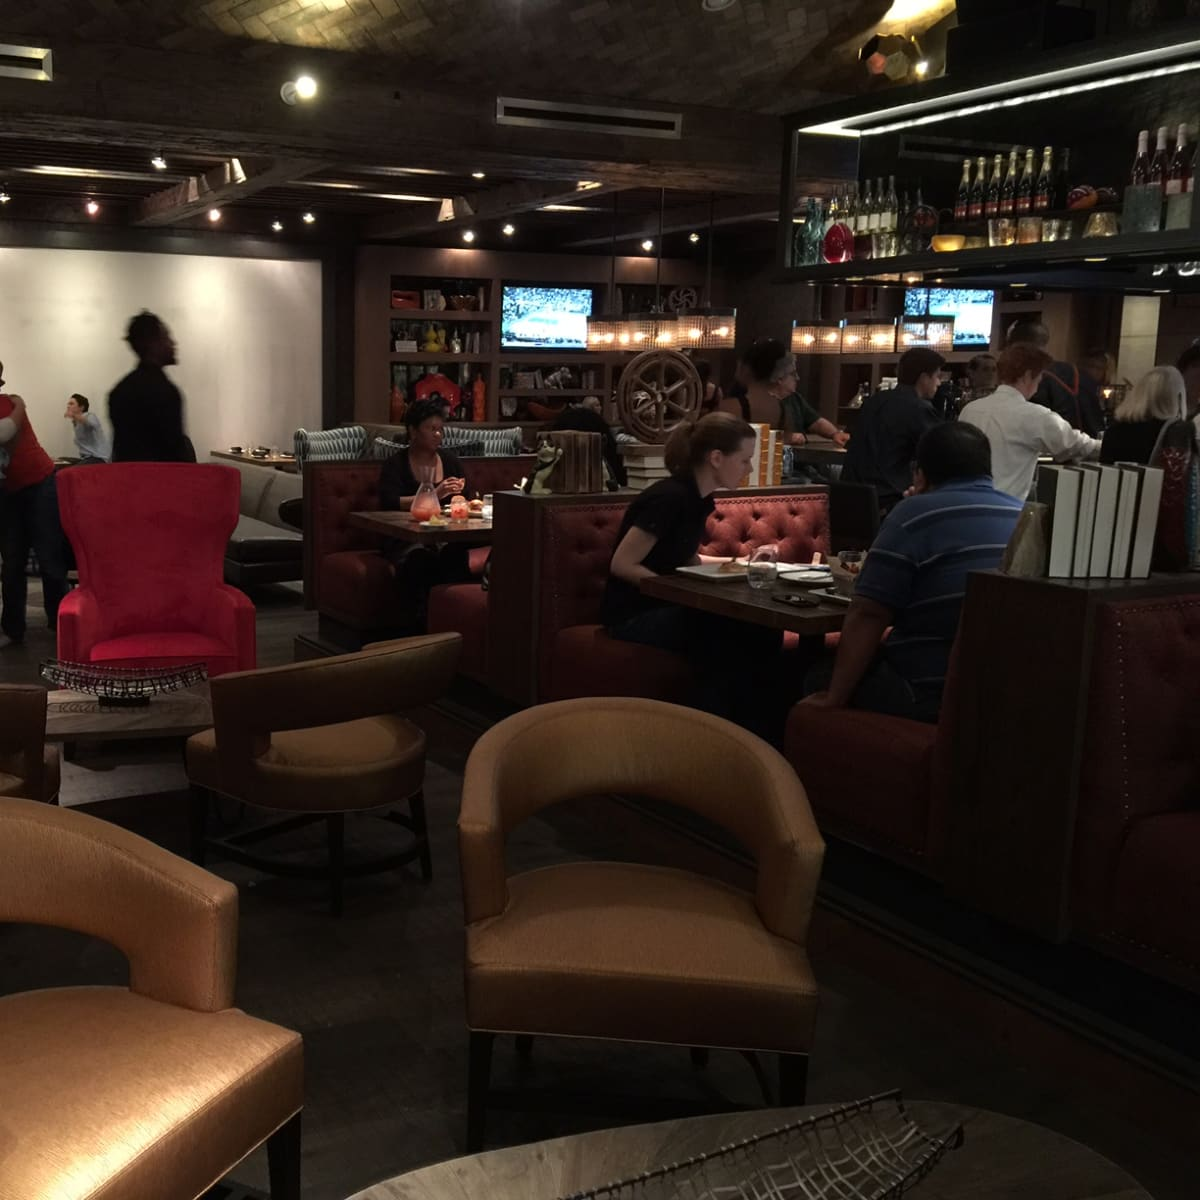 News, Shelby, iPic theater, lounge, Oct. 2015